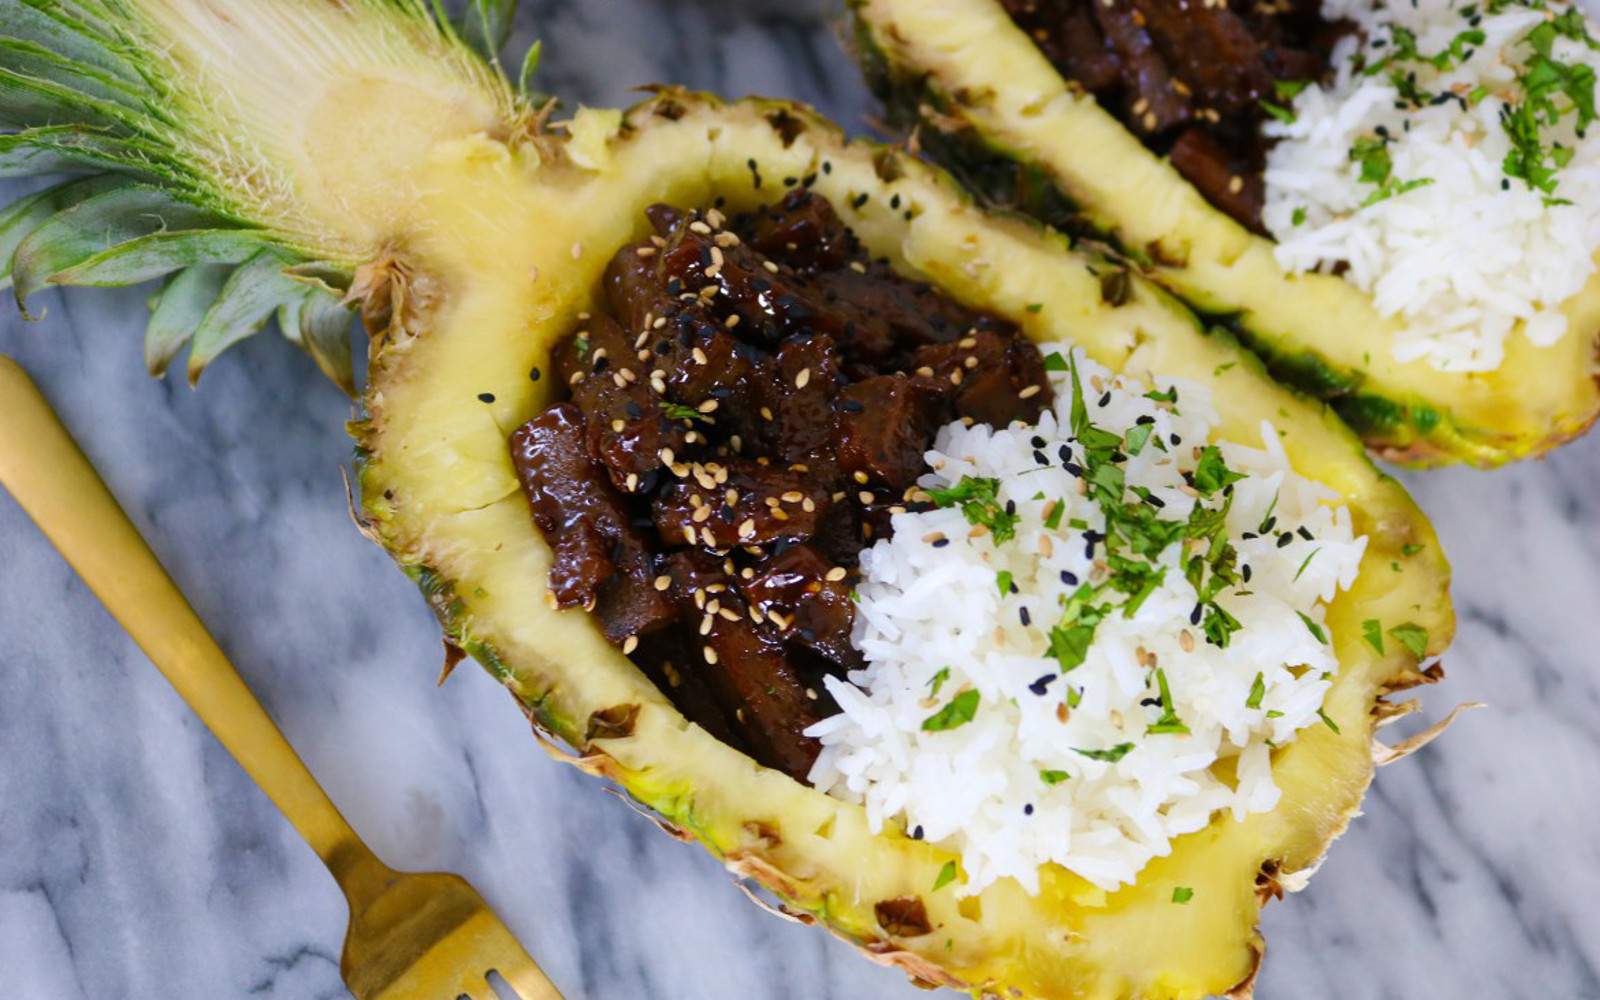 Teriyaki Pineapple Bowls